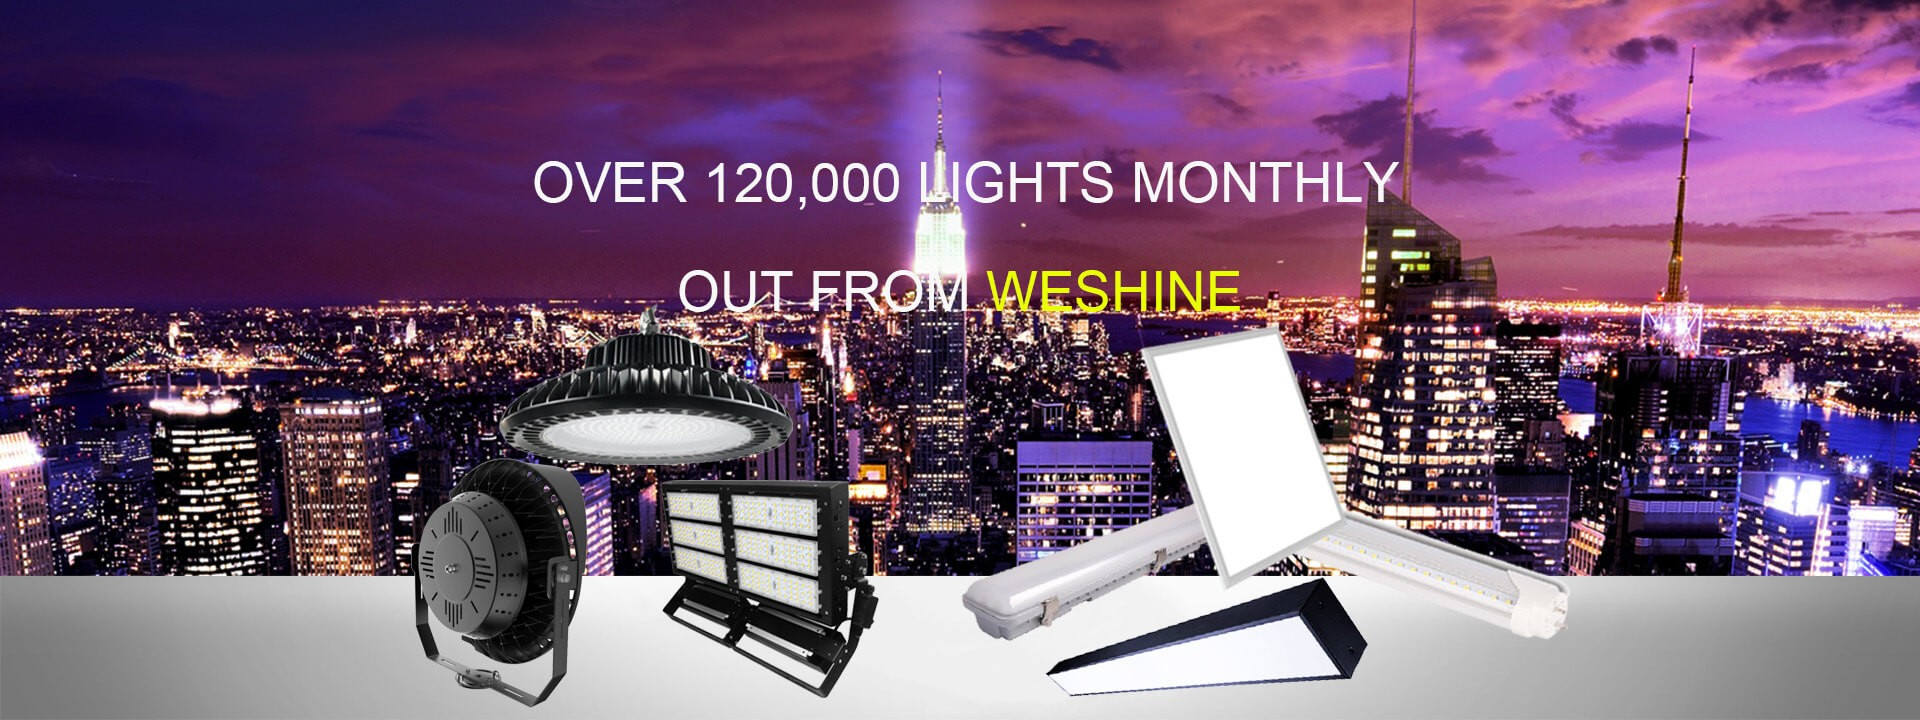 weshine led lighting products